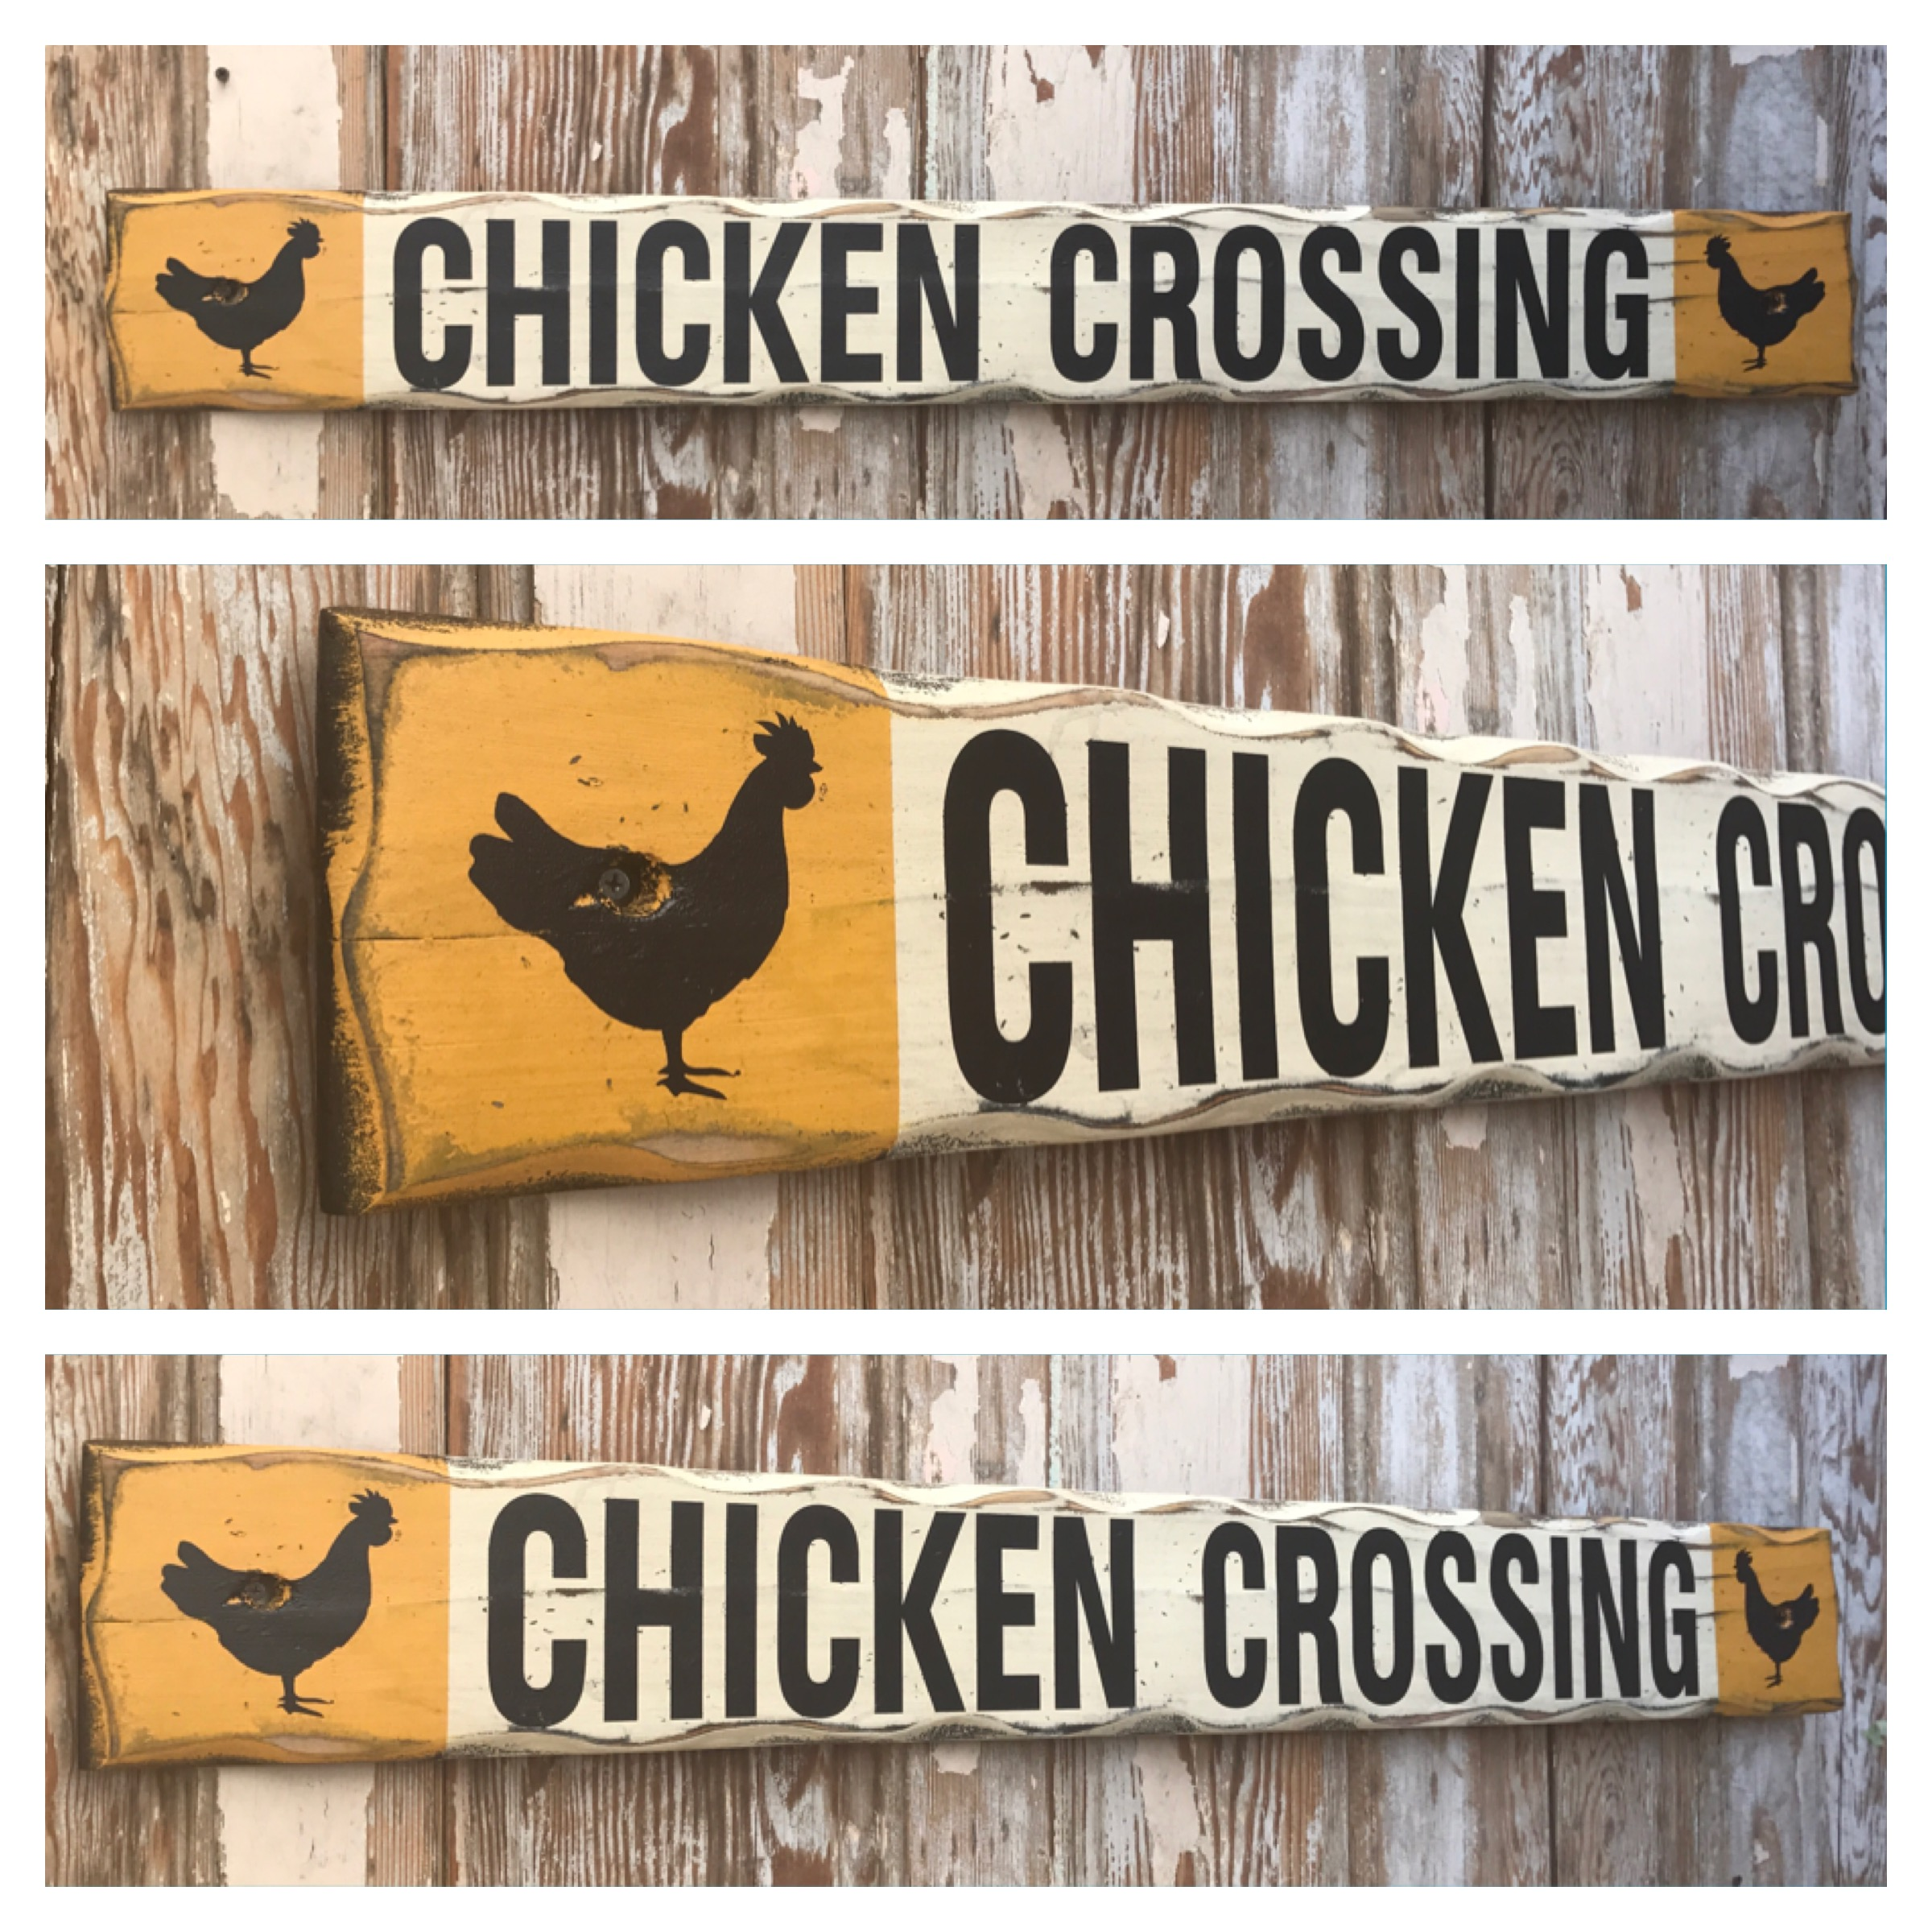 Chicken Crossing.  Rustic 4 Foot Long Wood Sign